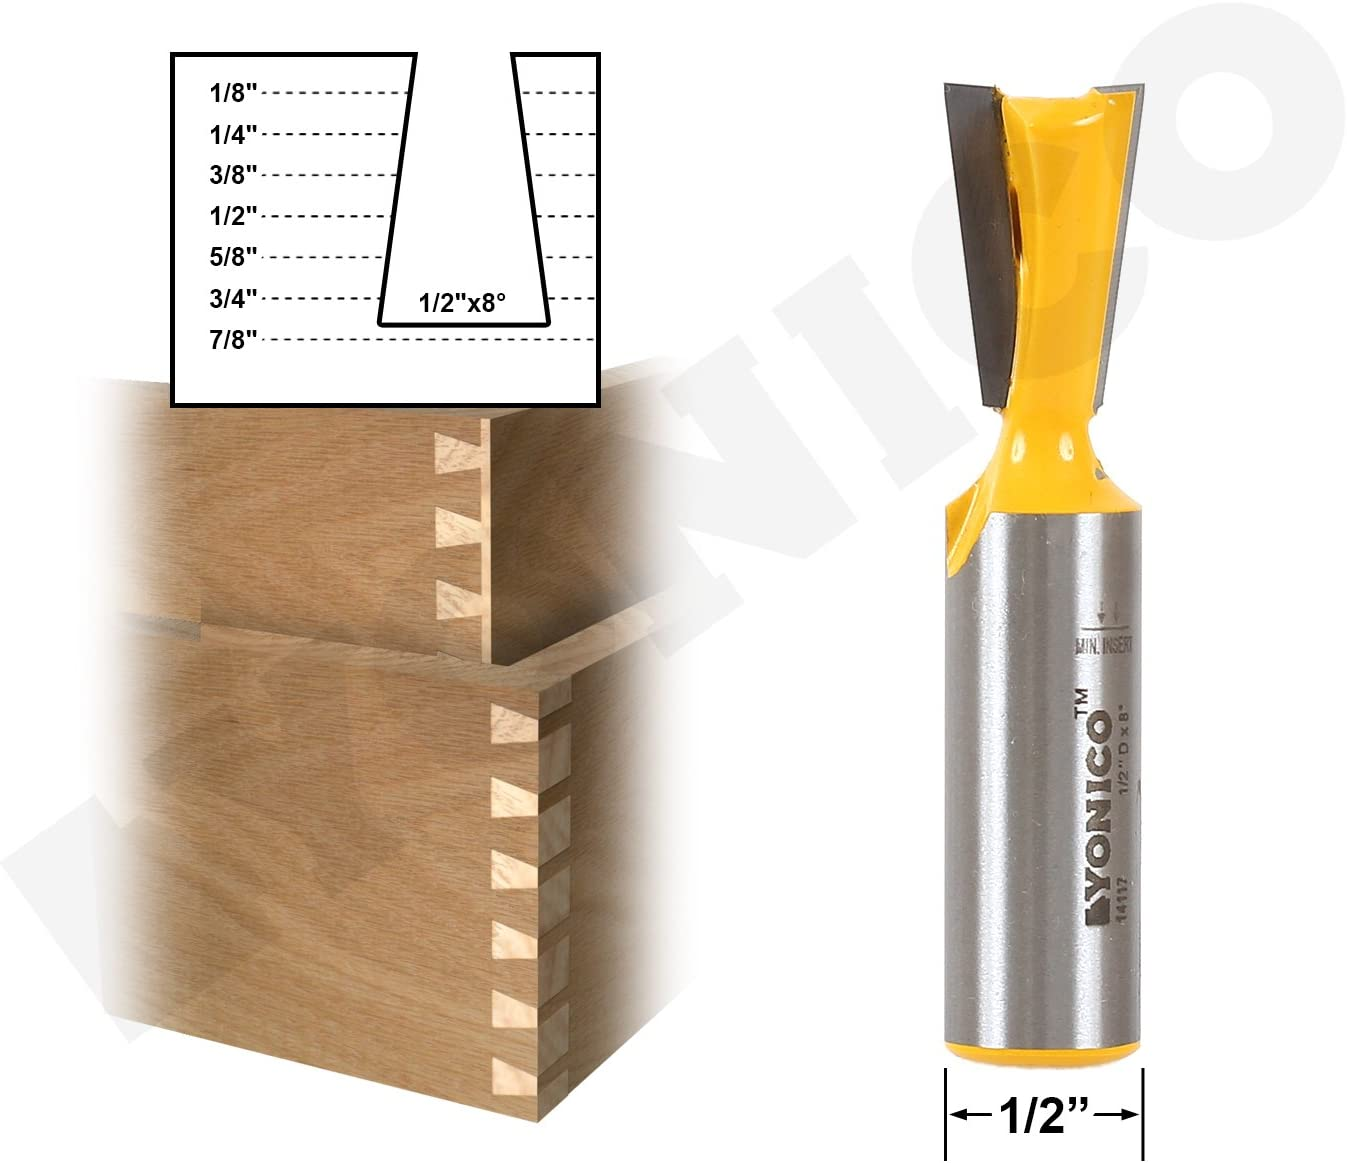 Yonico 14819 7/° X 5//8-Inch Dovetail Router Bit 1//2-Inch Shank